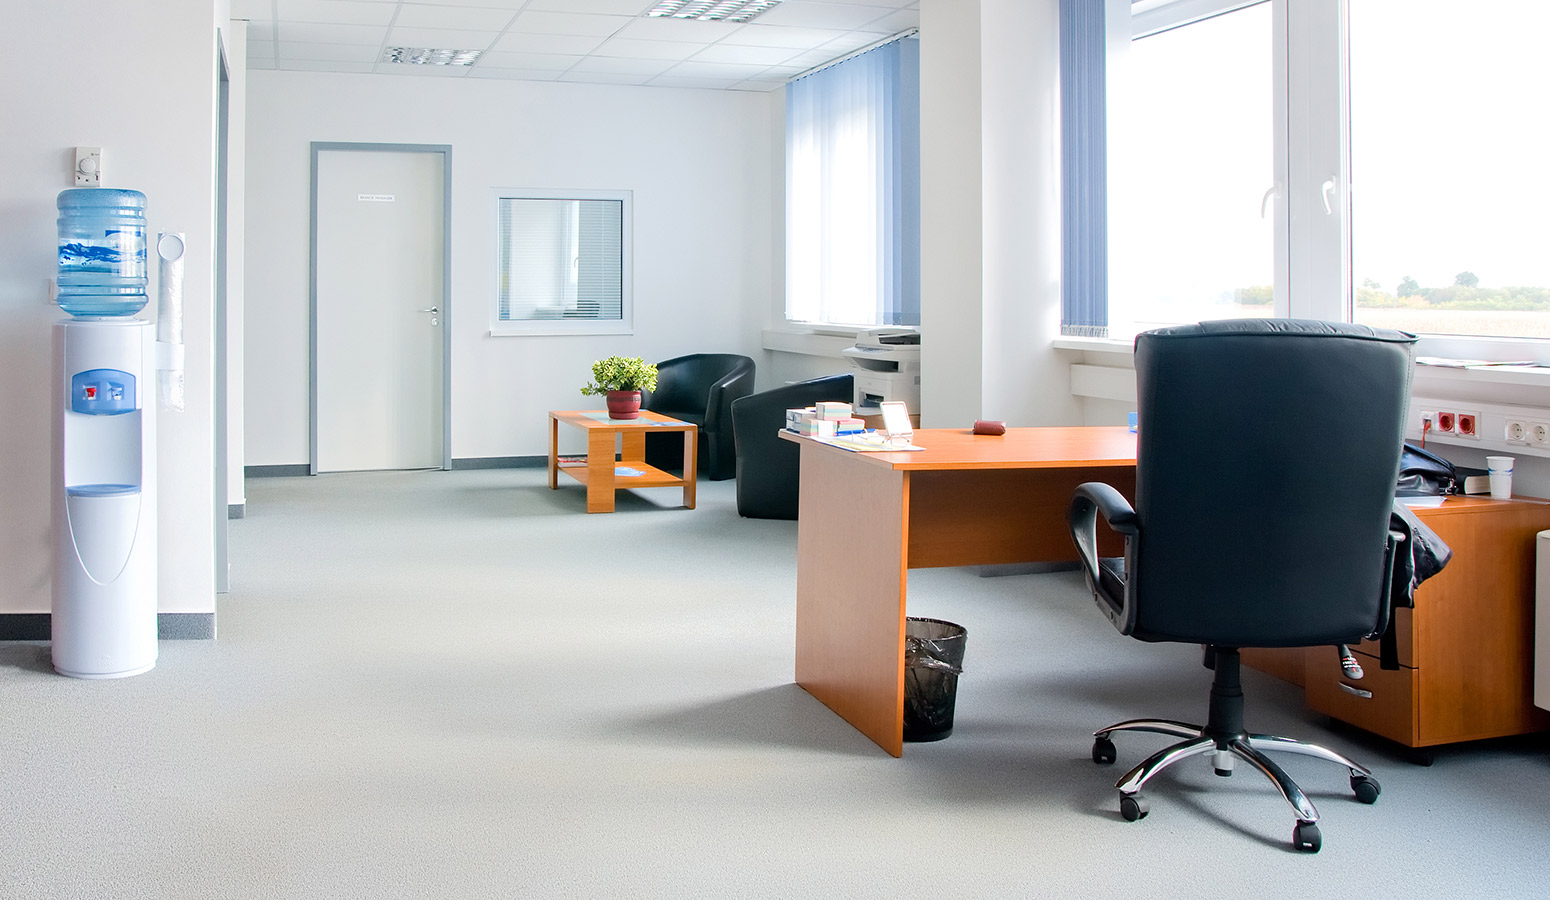 Commercial Cleaning Service | Deep Cleaning Company